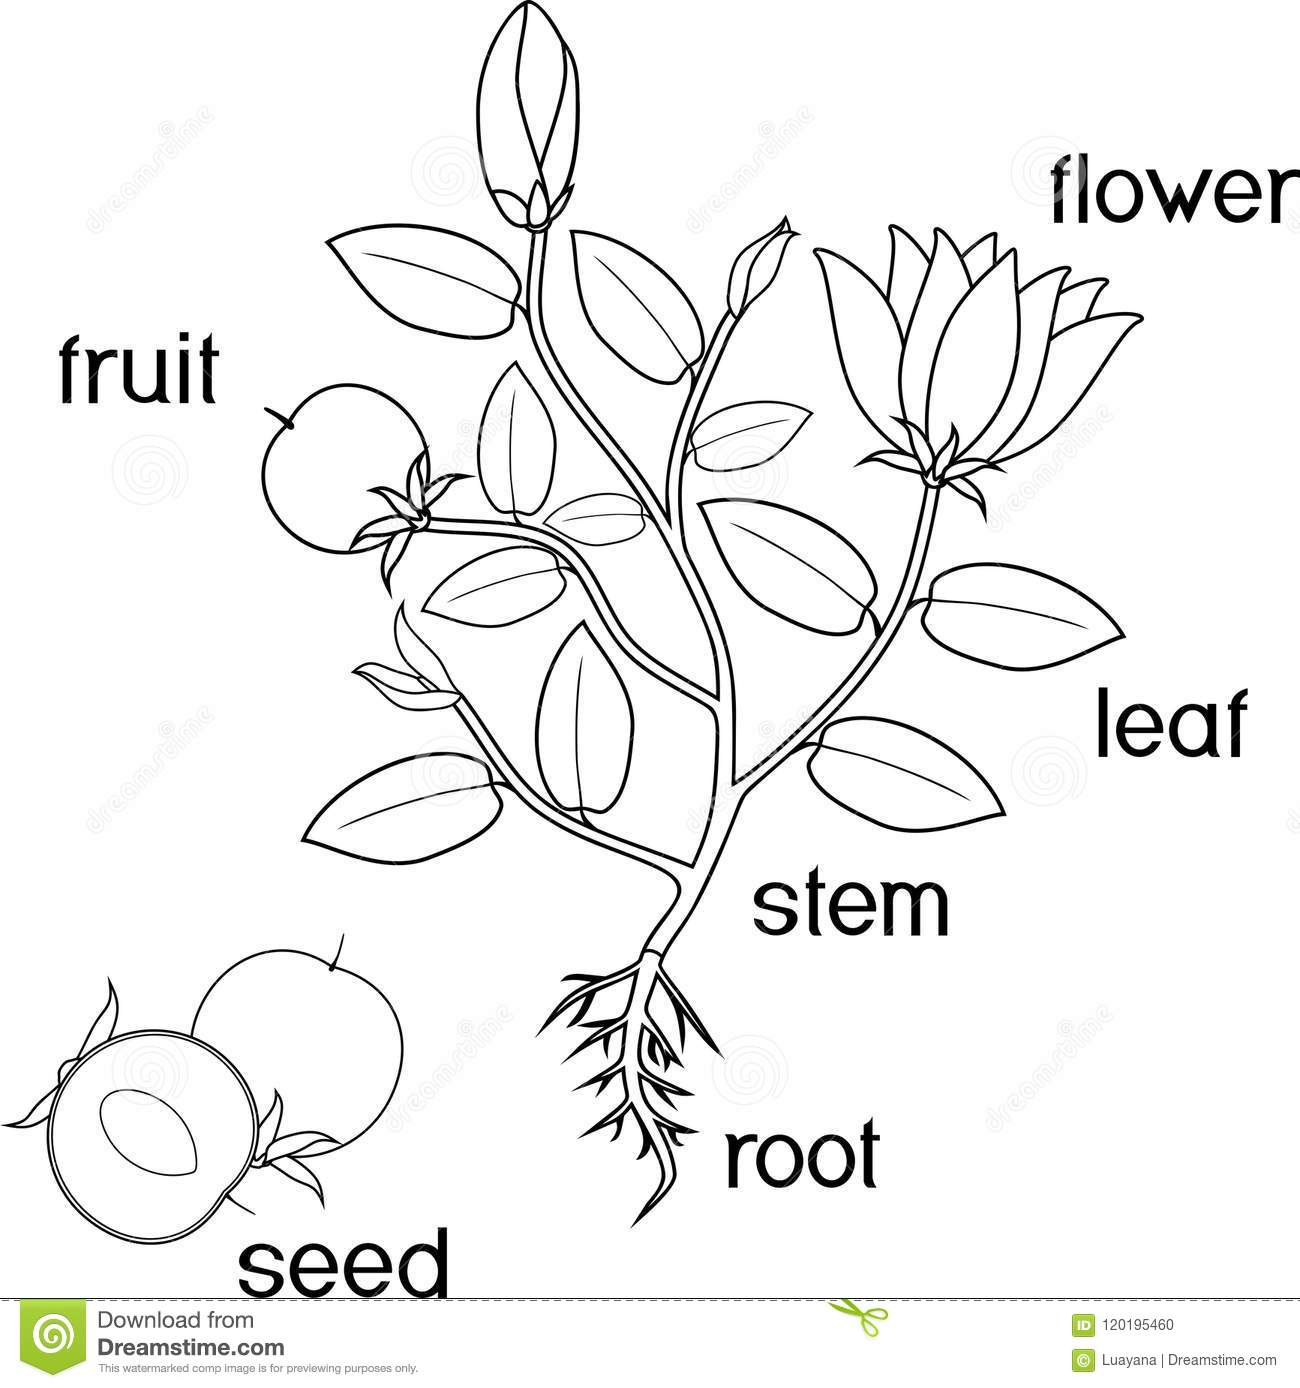 Worksheet Seed Parts Of Fruit